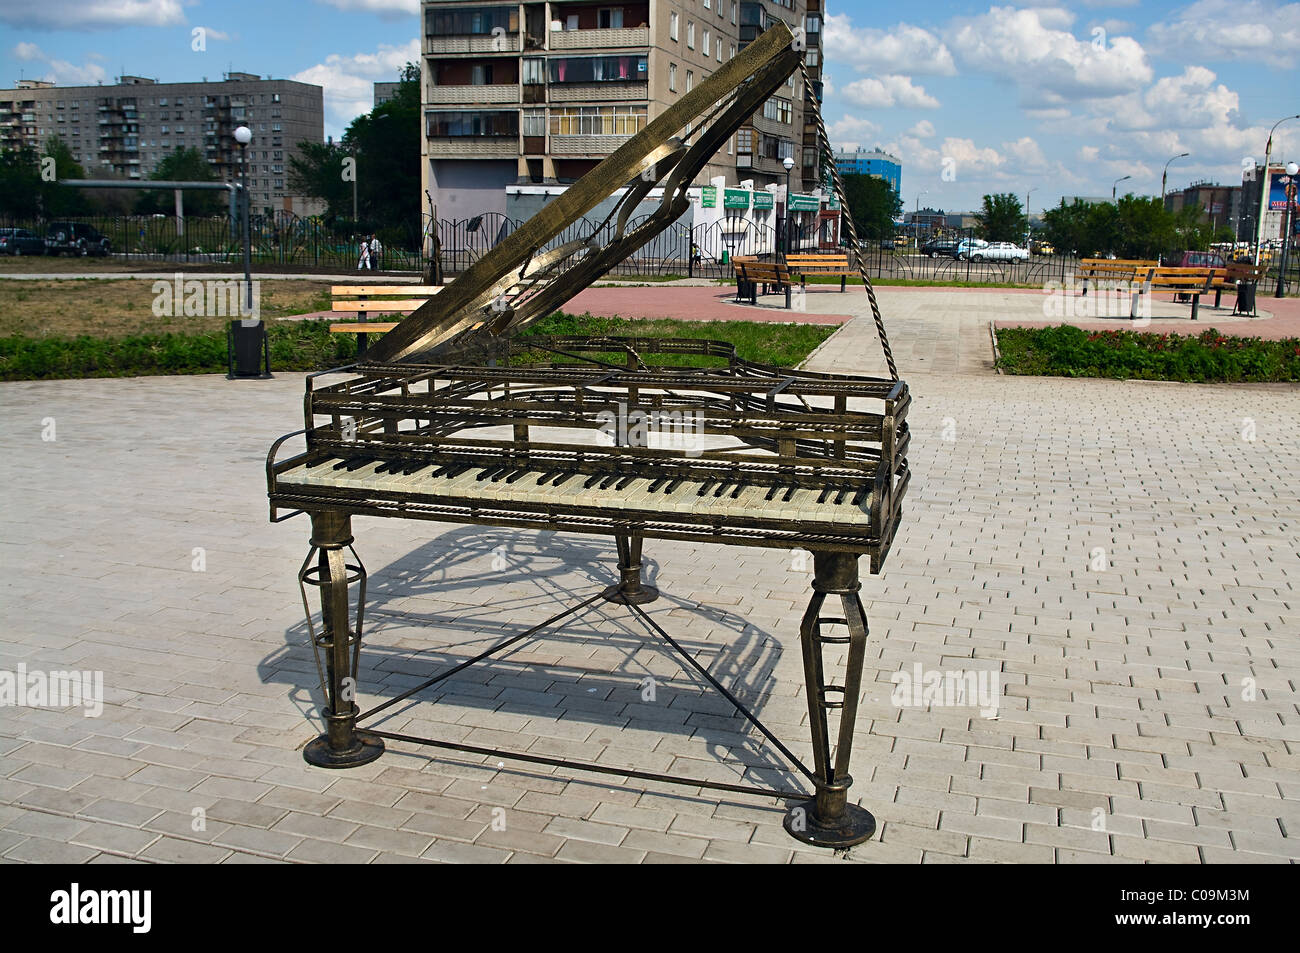 Musical statues a instruments from bronze in street of Chelyabinsk, Russia. - Stock Image